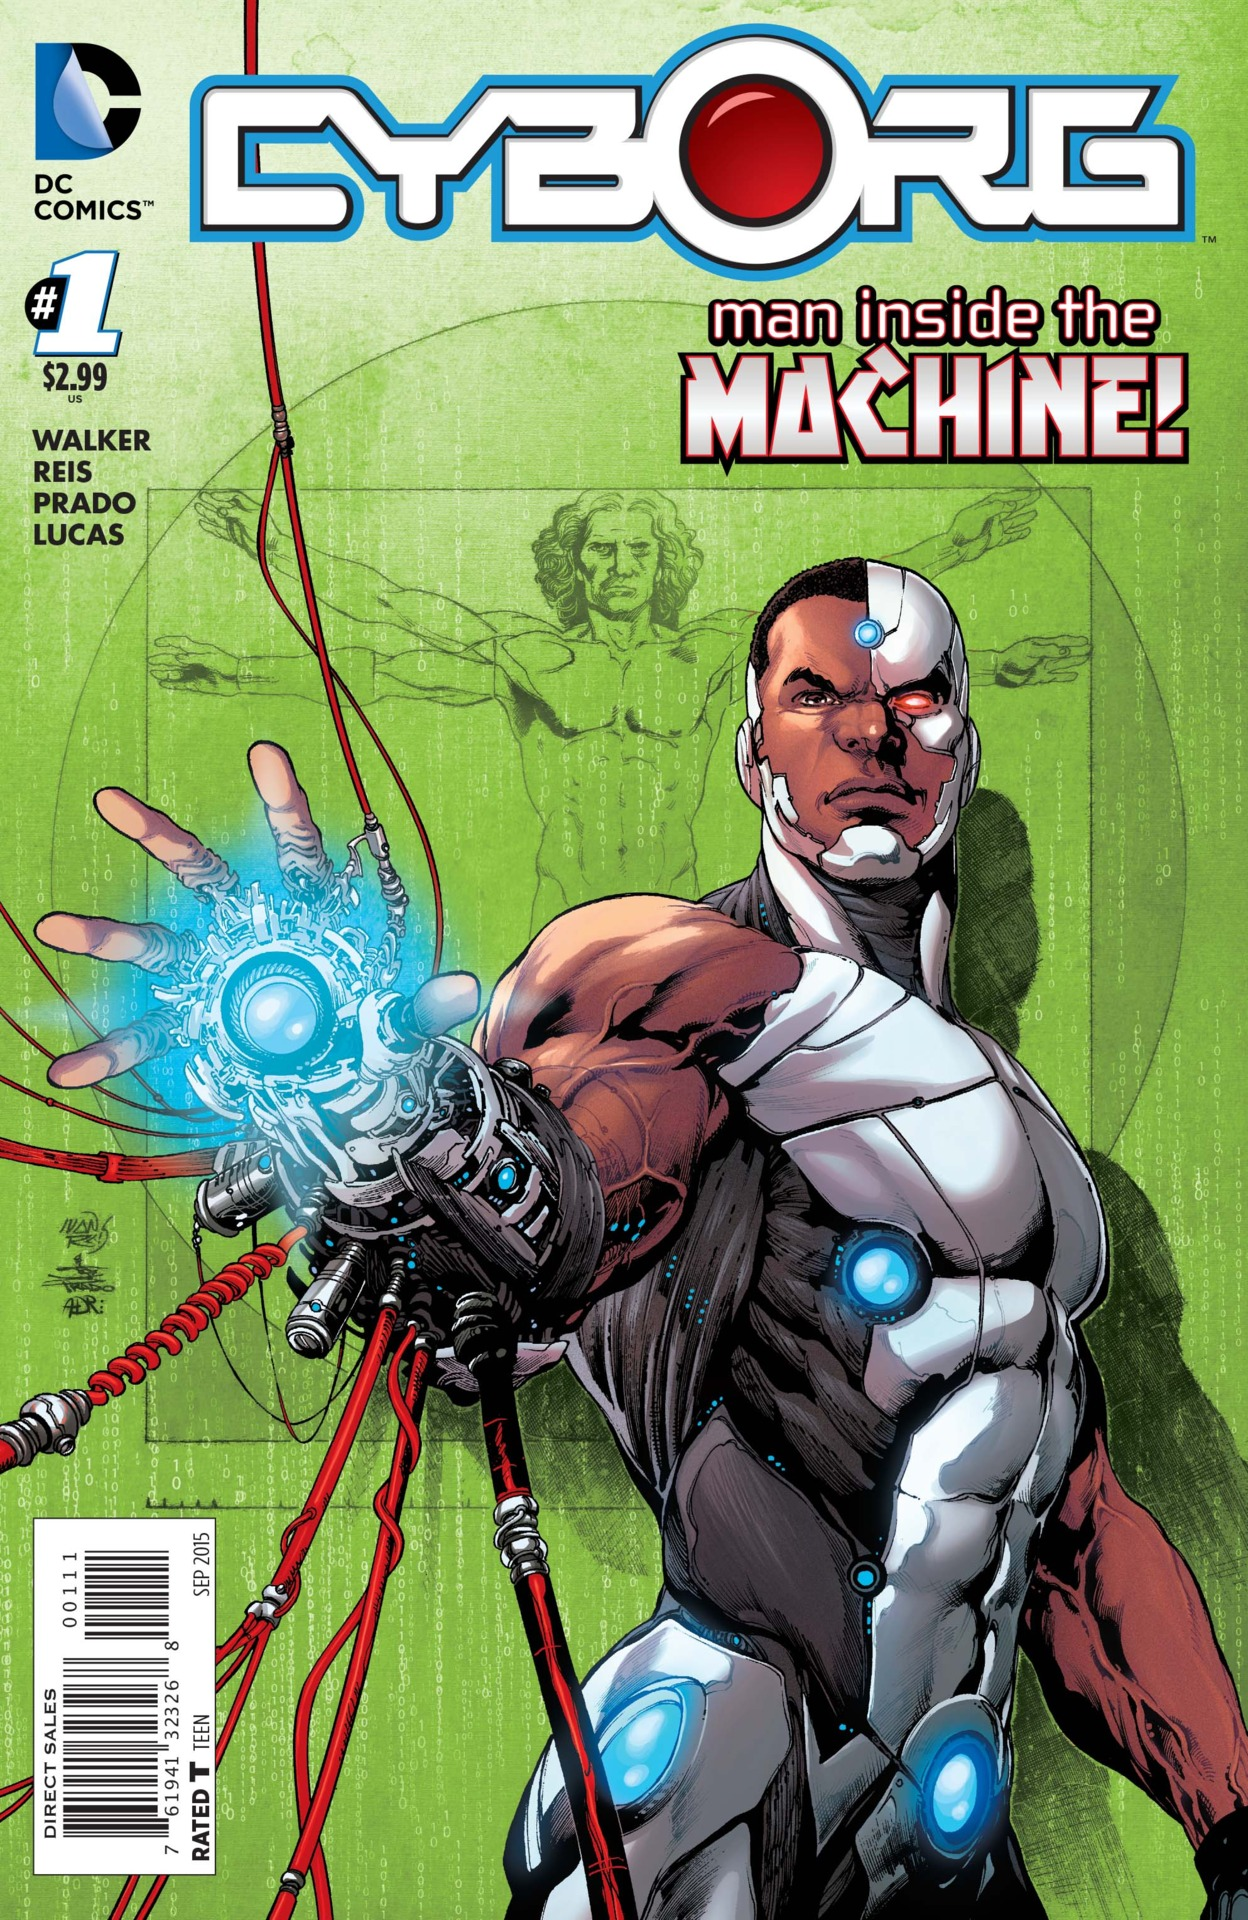 Cyborg #1 preview